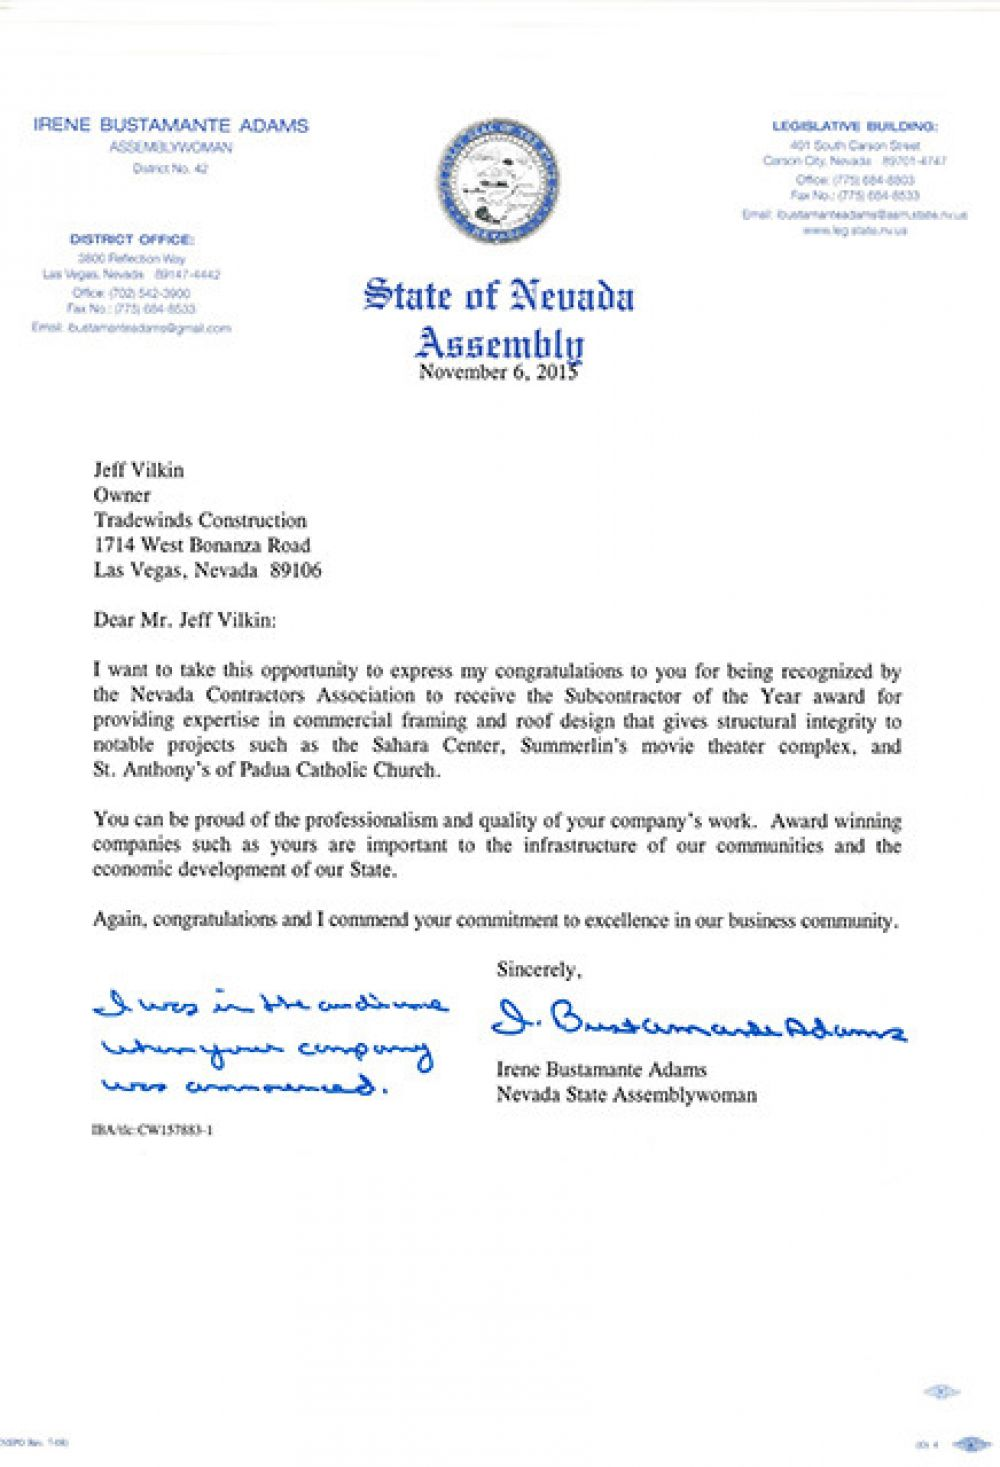 State of Nevada Assemblywoman Letter